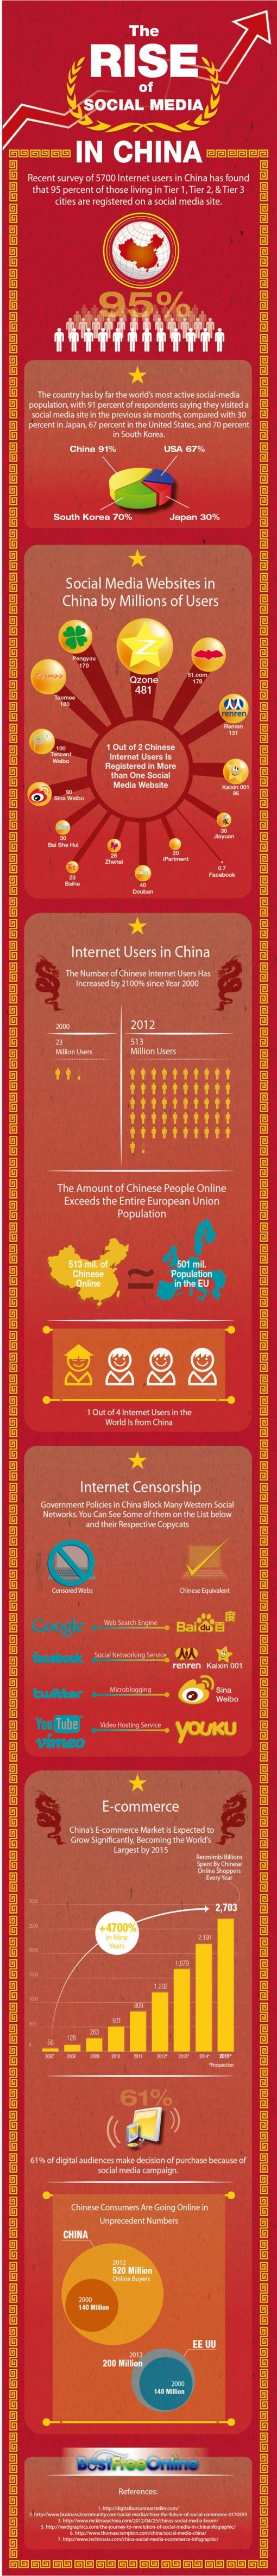 The Rise of Social Media in China [INFOGRAPHIC] #infographic